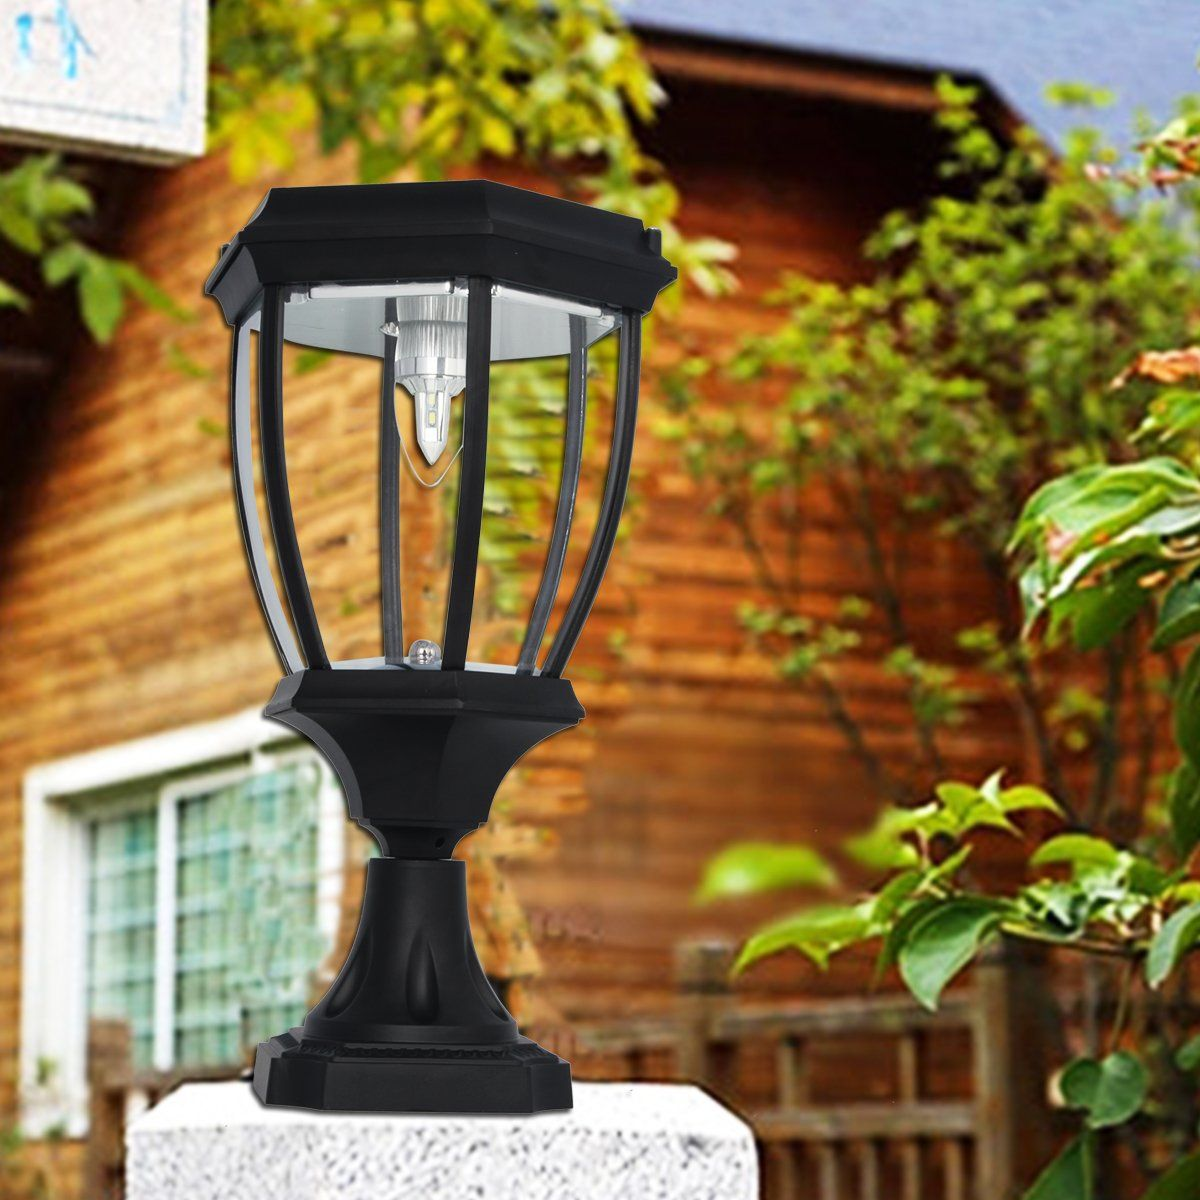 Large Outdoor Solar Powered LED Light Lamp SL8405 (With